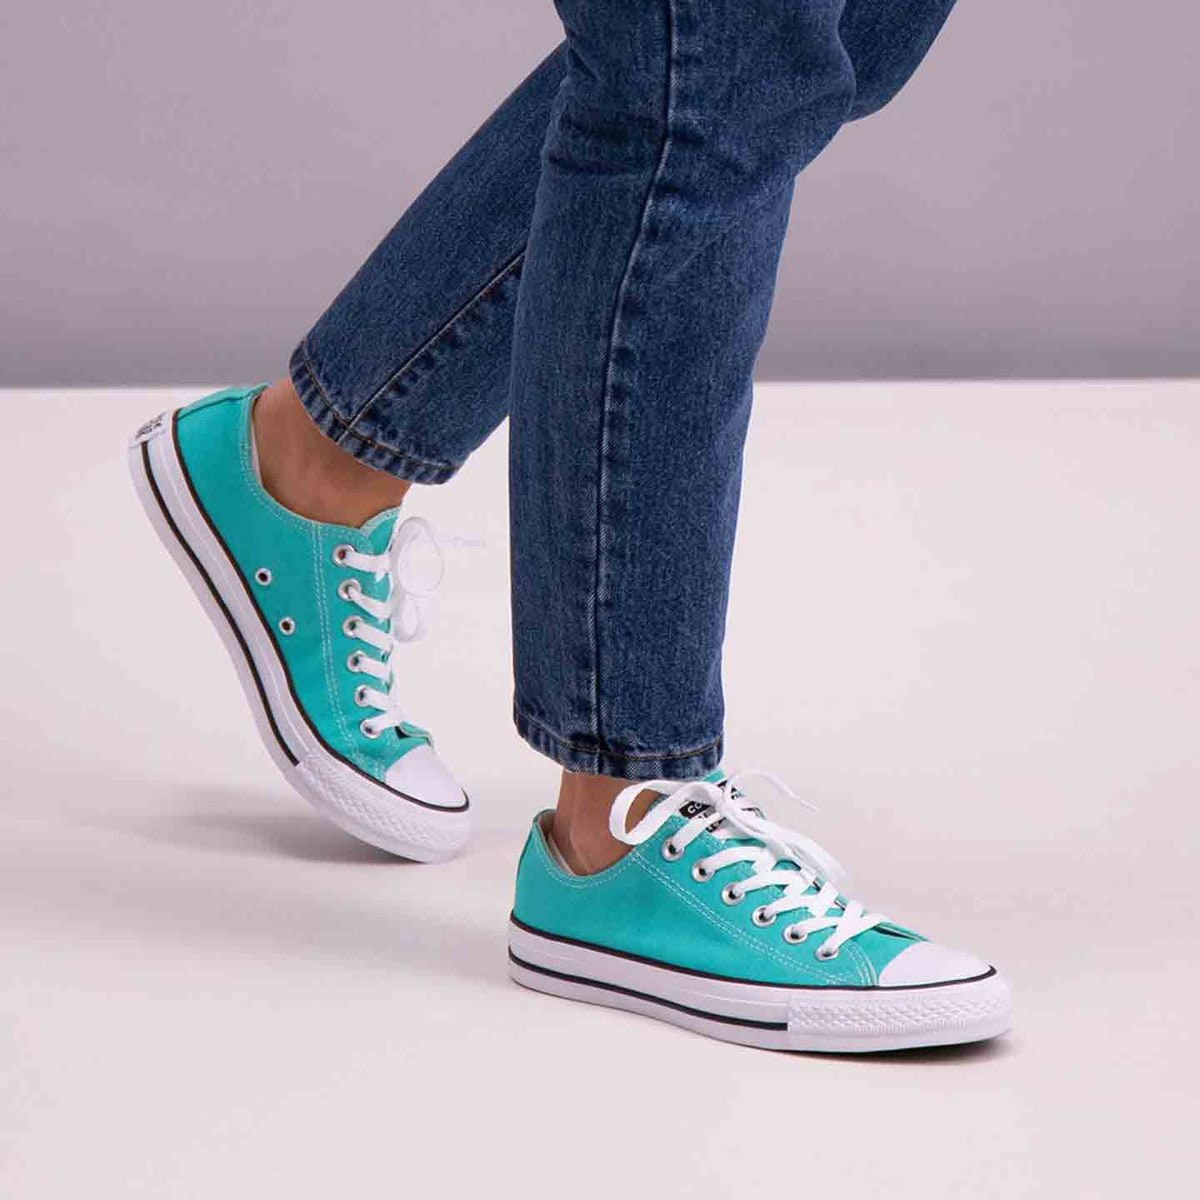 b2882f3c8823 Turquoise Blue Aqua Converse Pure Teal Low Tops w  Swarovski Crystal  Rhinestone Chuck Taylor All Star Bride Groom Wedding Sneakers Shoes